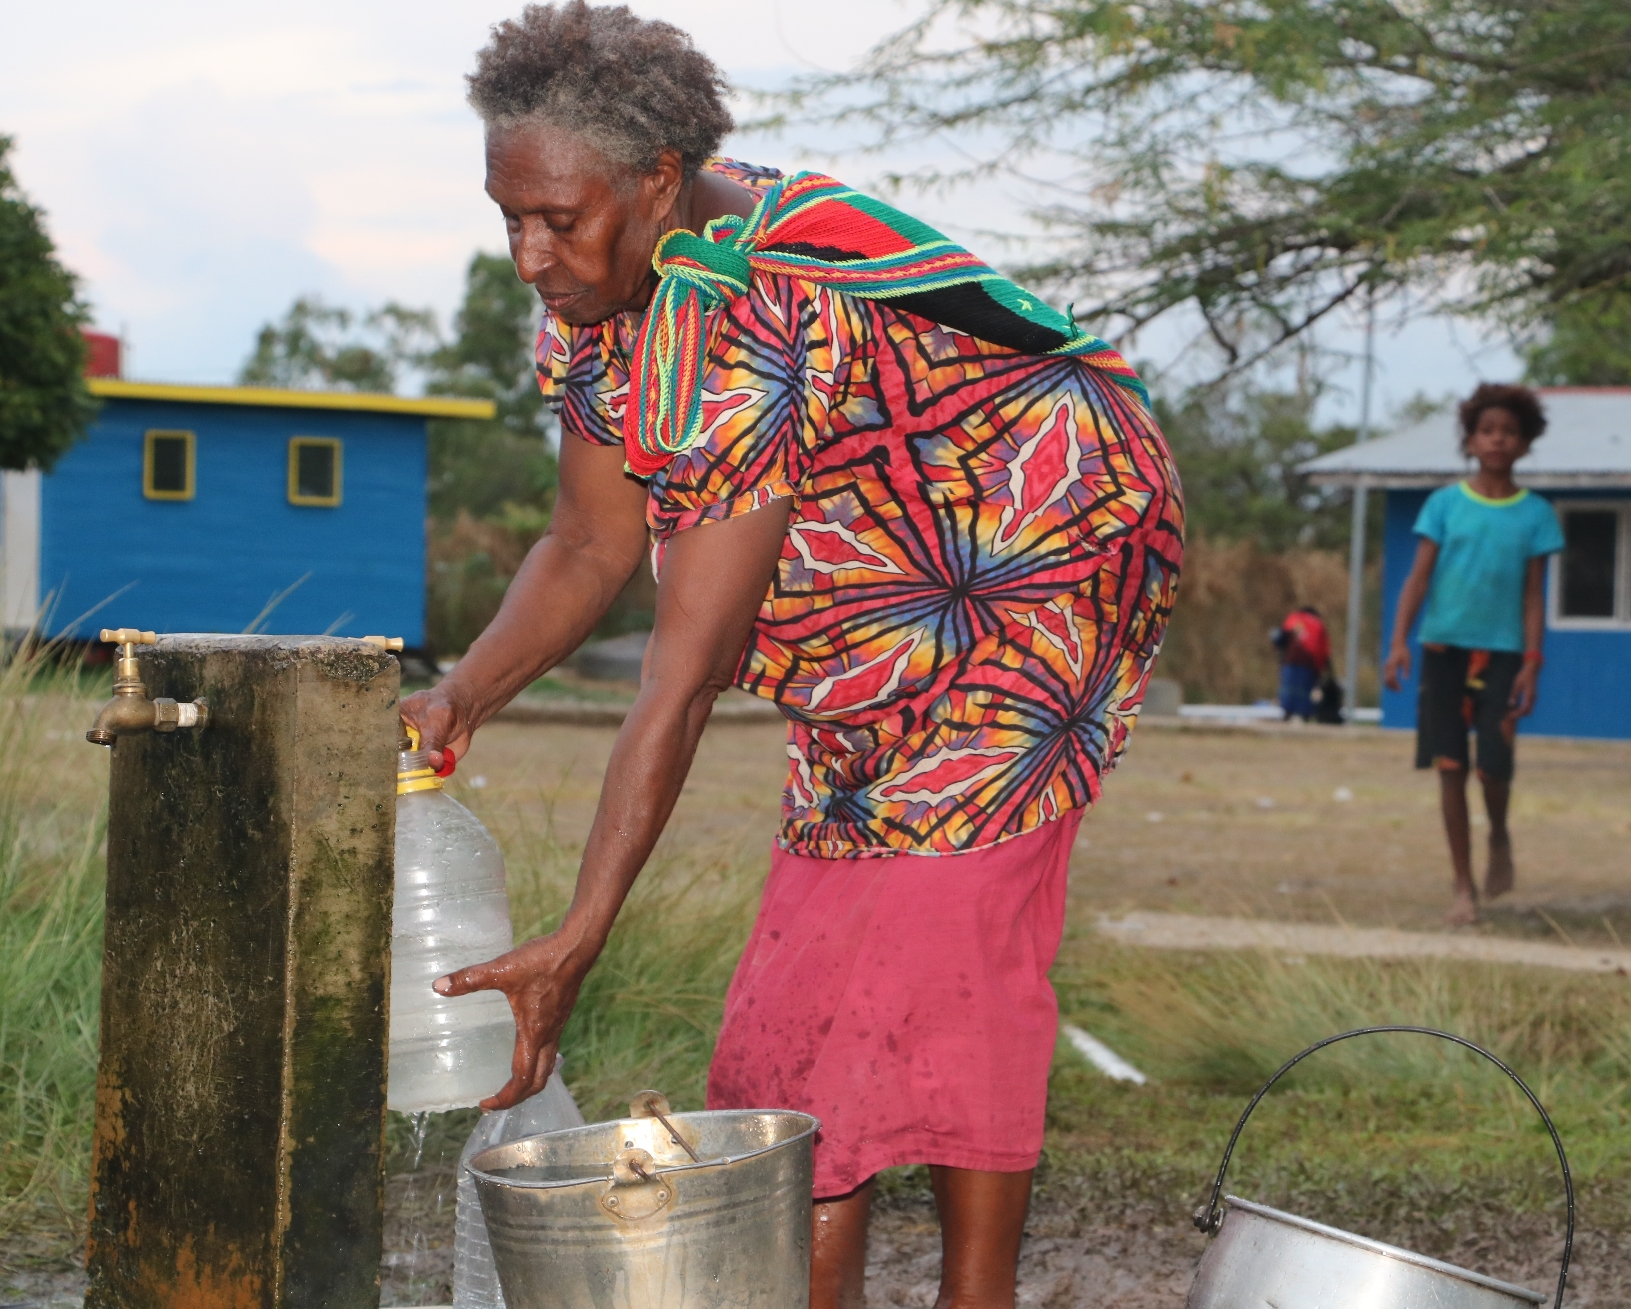 Bringing ripples of ease in accessing water for Louisa and other mothers in Daru (26)